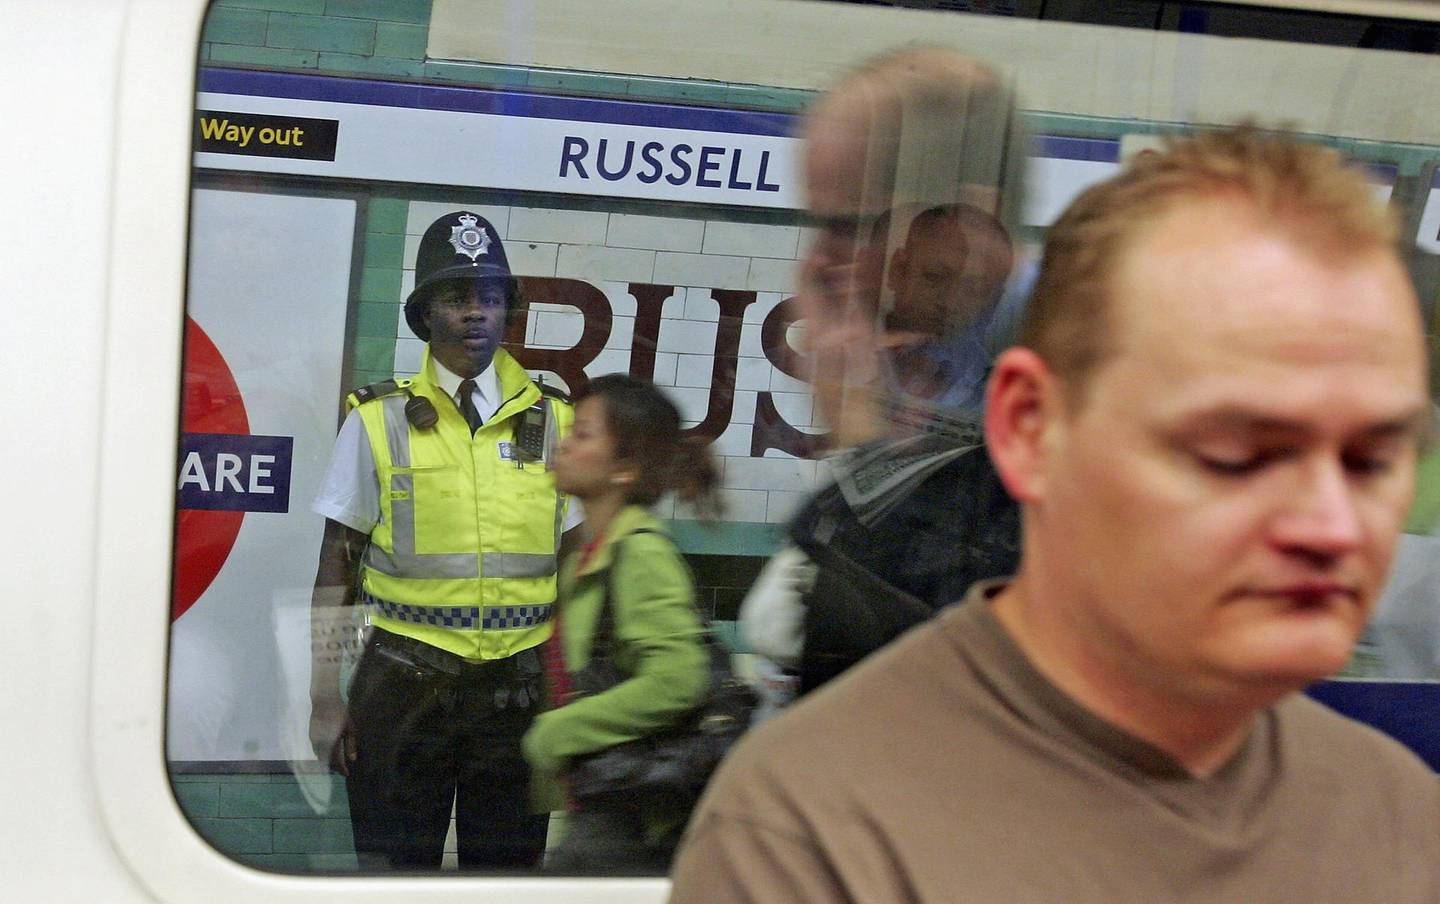 LONDON - JULY 07:  A British police officer watches commuters at Russell Square Underground Station on July 7, 2006 in London, England. On July 7, 2005 three Underground trains were hit by suicide bombers and a fourth blast on the number 30 double-decker bus at the junction of Tavistock Square and Upper Woburn place, killing 52 civilians.  (Photo by Scott Barbour/Getty Images)